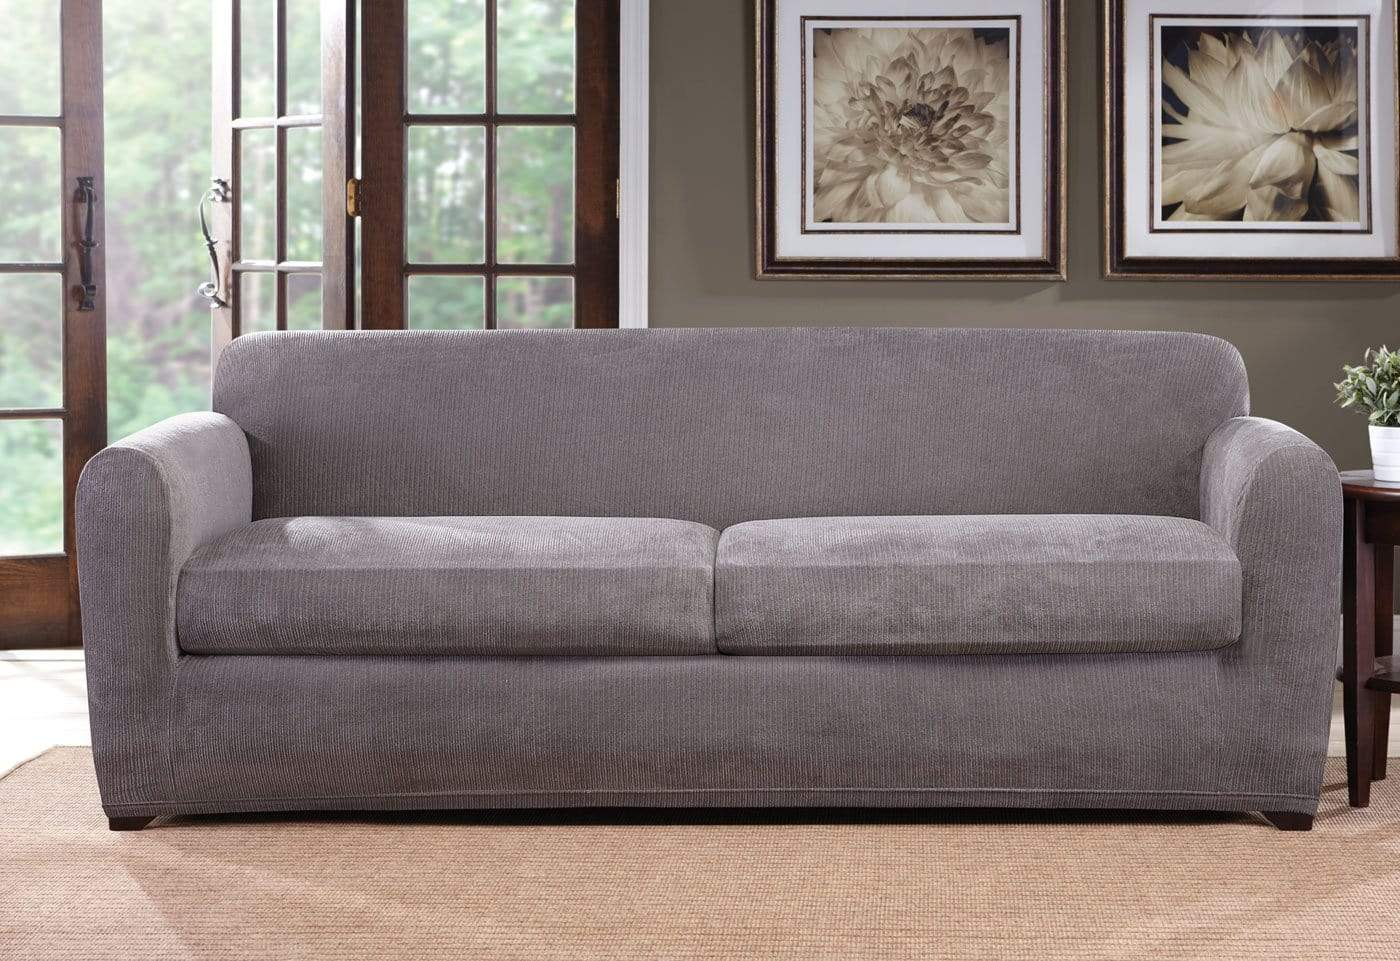 sofa s becky honored them recommend your be i these enjoying as imagine to beckys slipcovers bemz slipcover and so update definitely would looking can beautiful you anyone m farmhouse